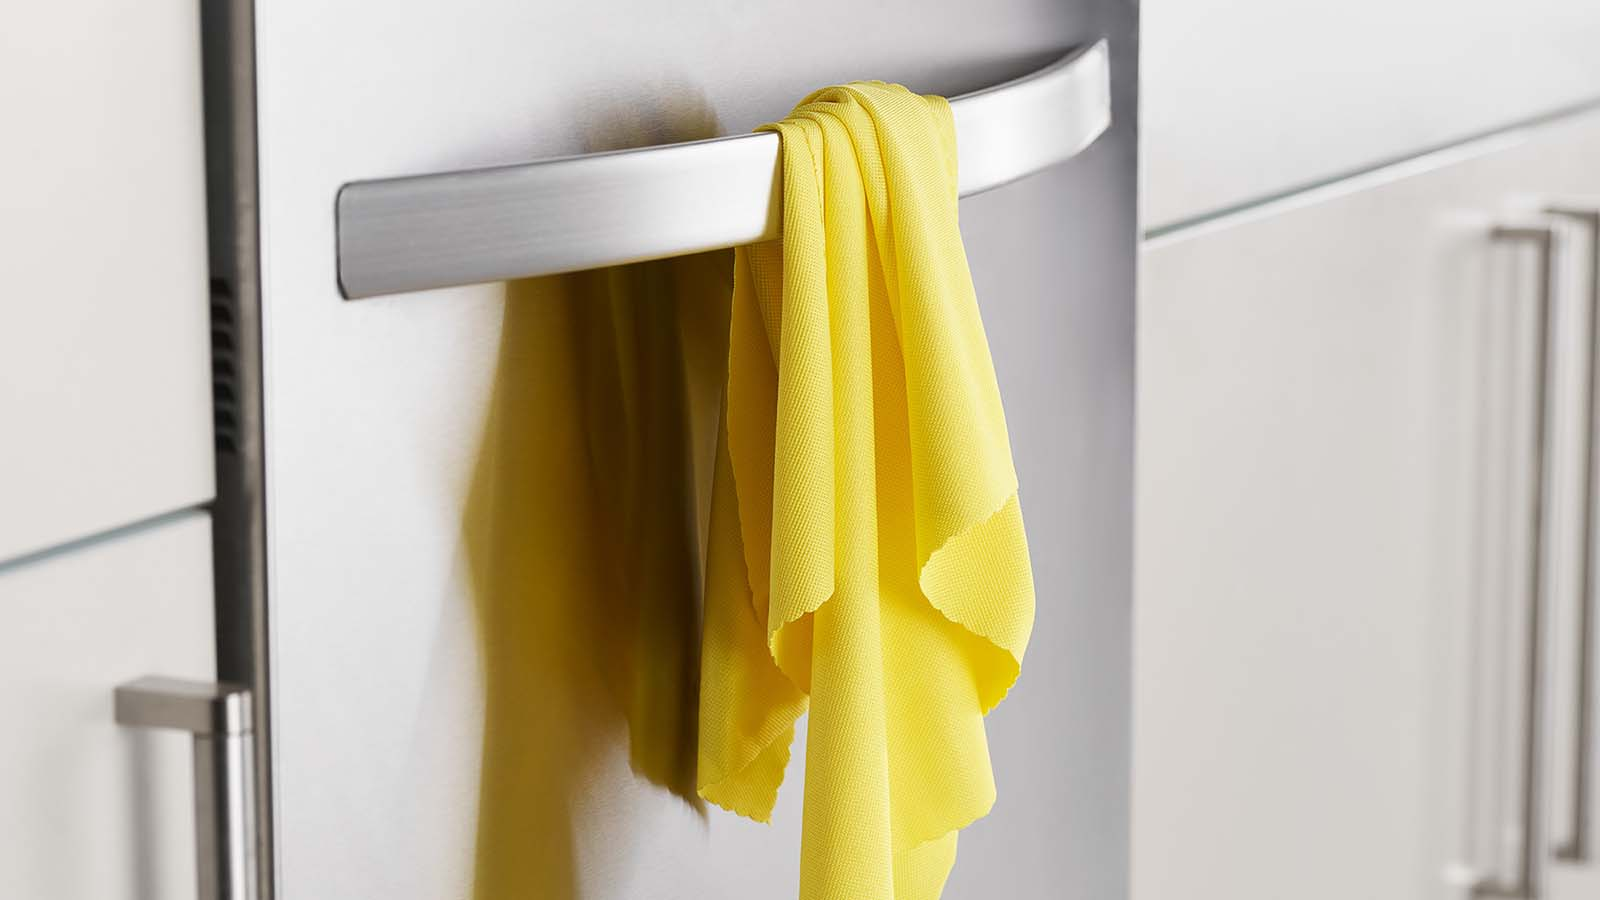 E-Cloth Cleaning Cloth How To Clean Refrigerator